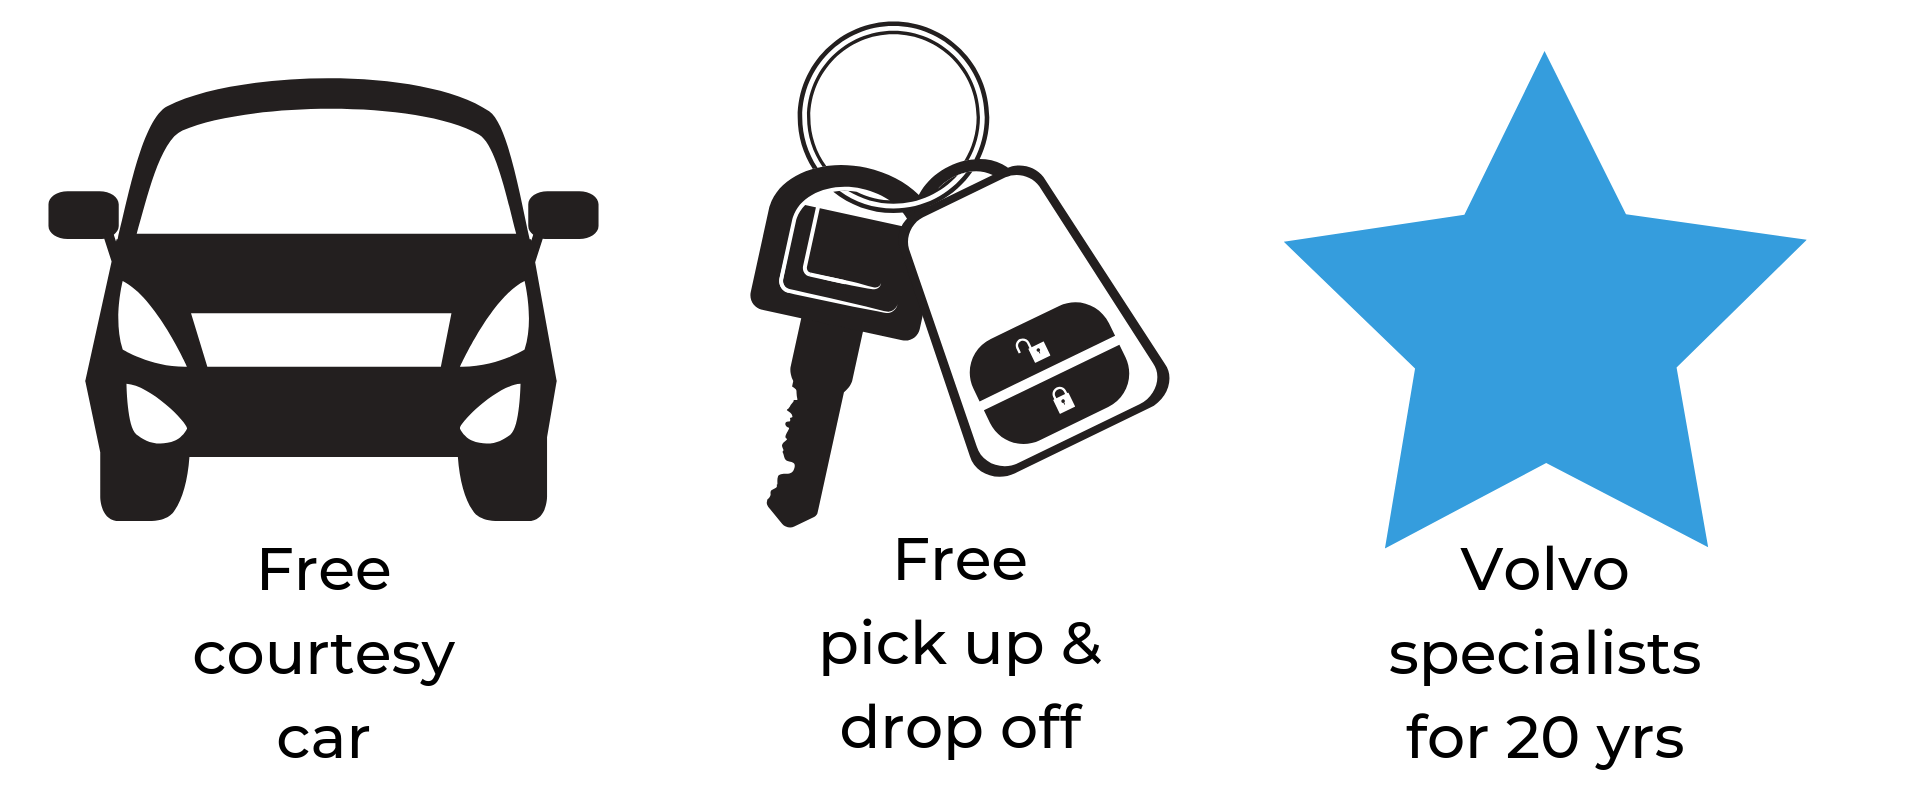 Free courtesy car, pick up and drop off process with Volvo